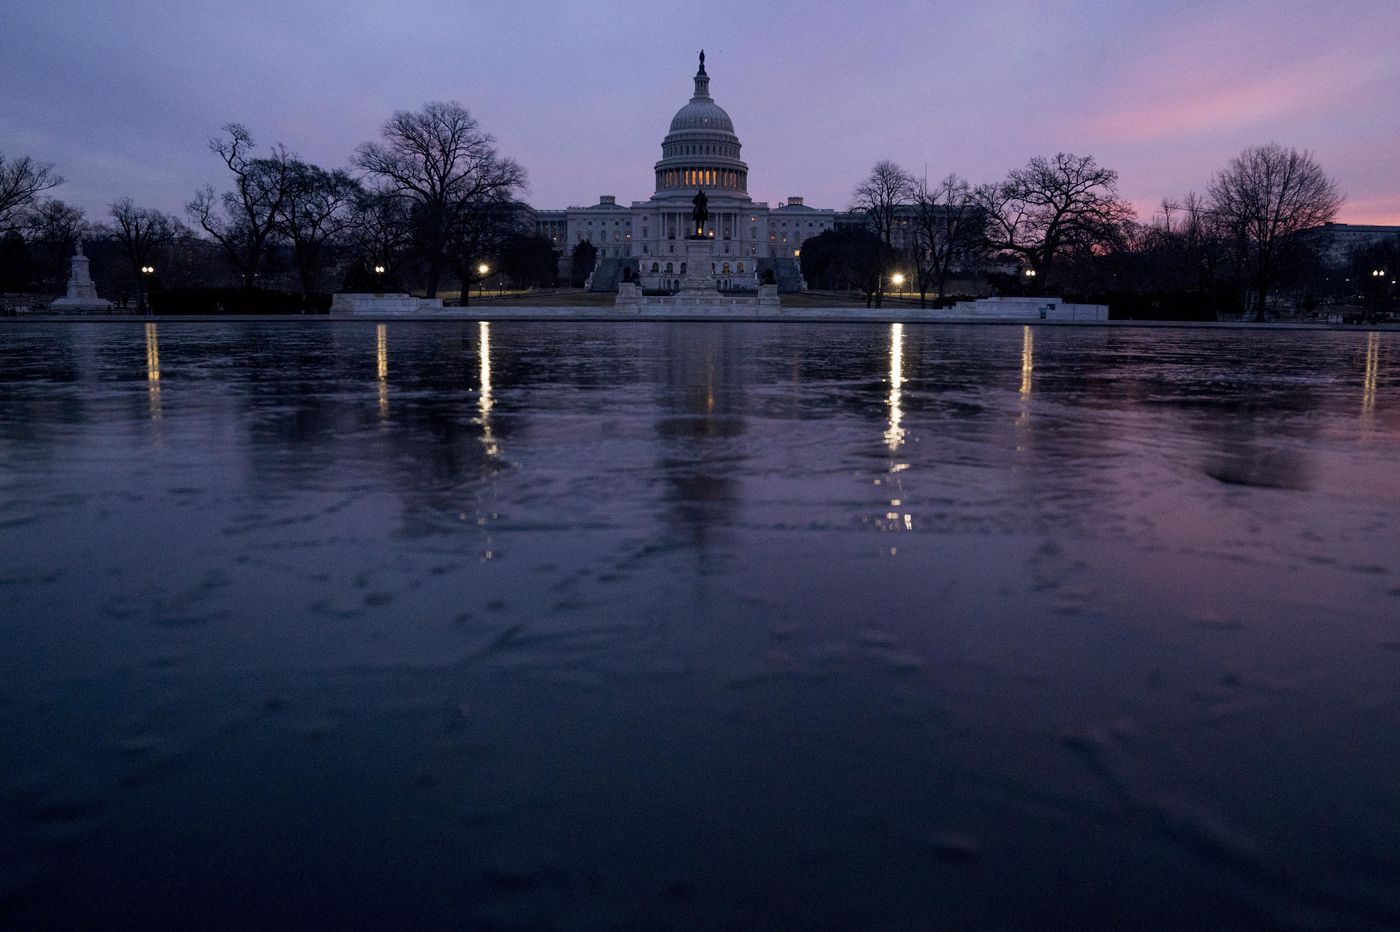 U.S. government is set to spend $1,000,000,000,000 more than it earns. Who'll pay for it?